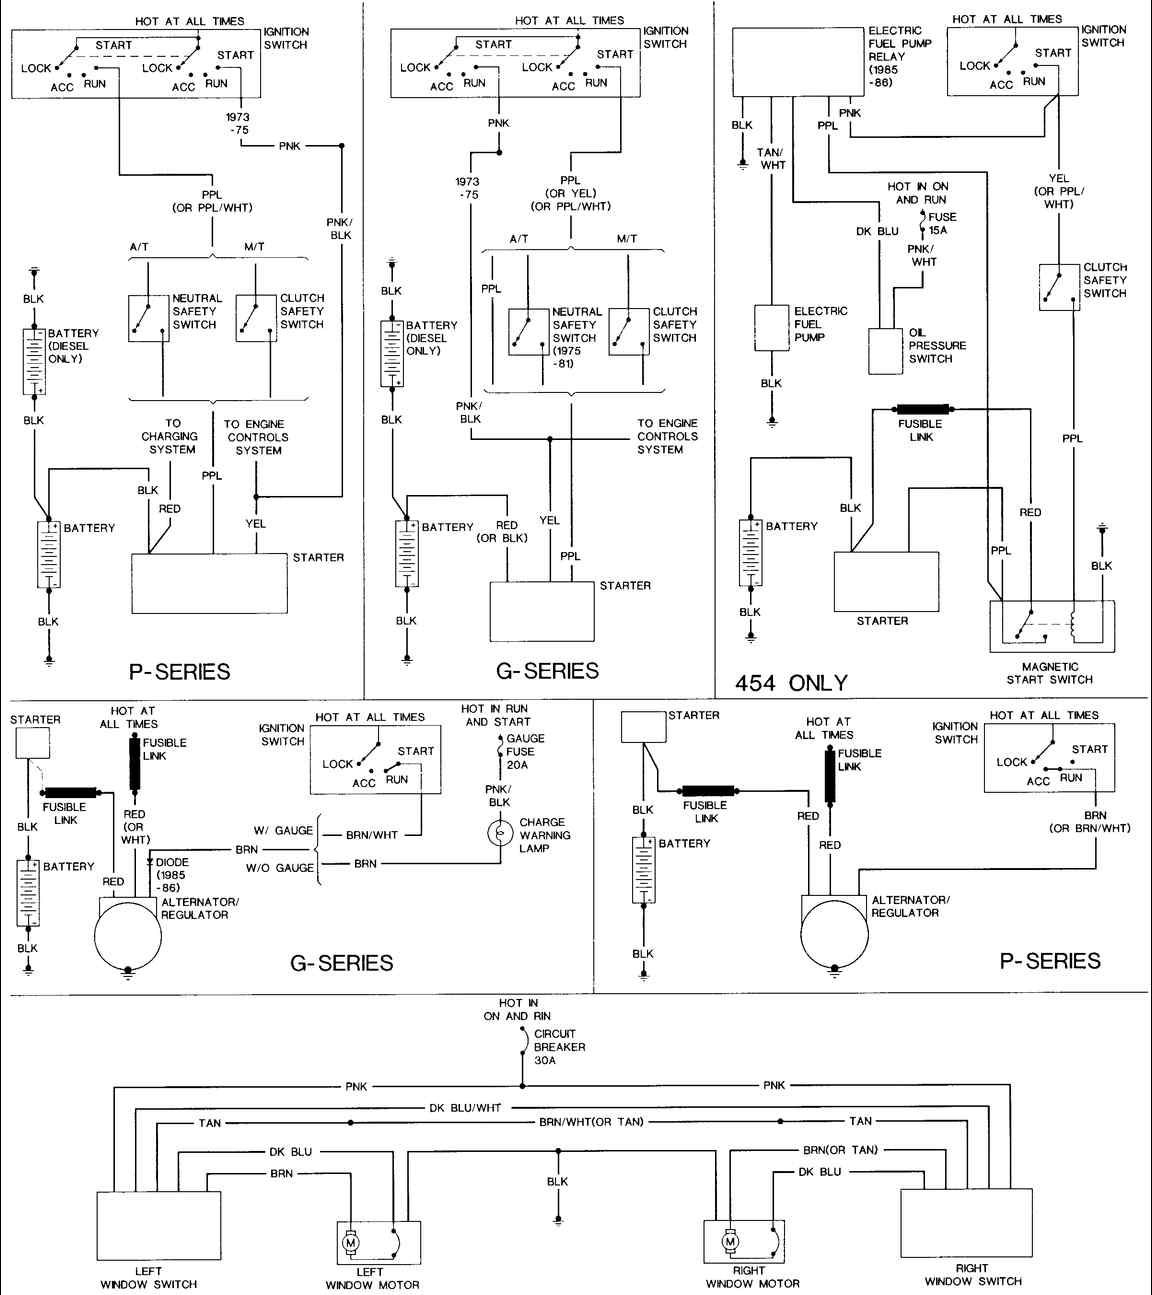 1979 Dt 250 Wiring Diagram | Digital Resources Yamaha Sr Motorcycle Wiring Diagrams on